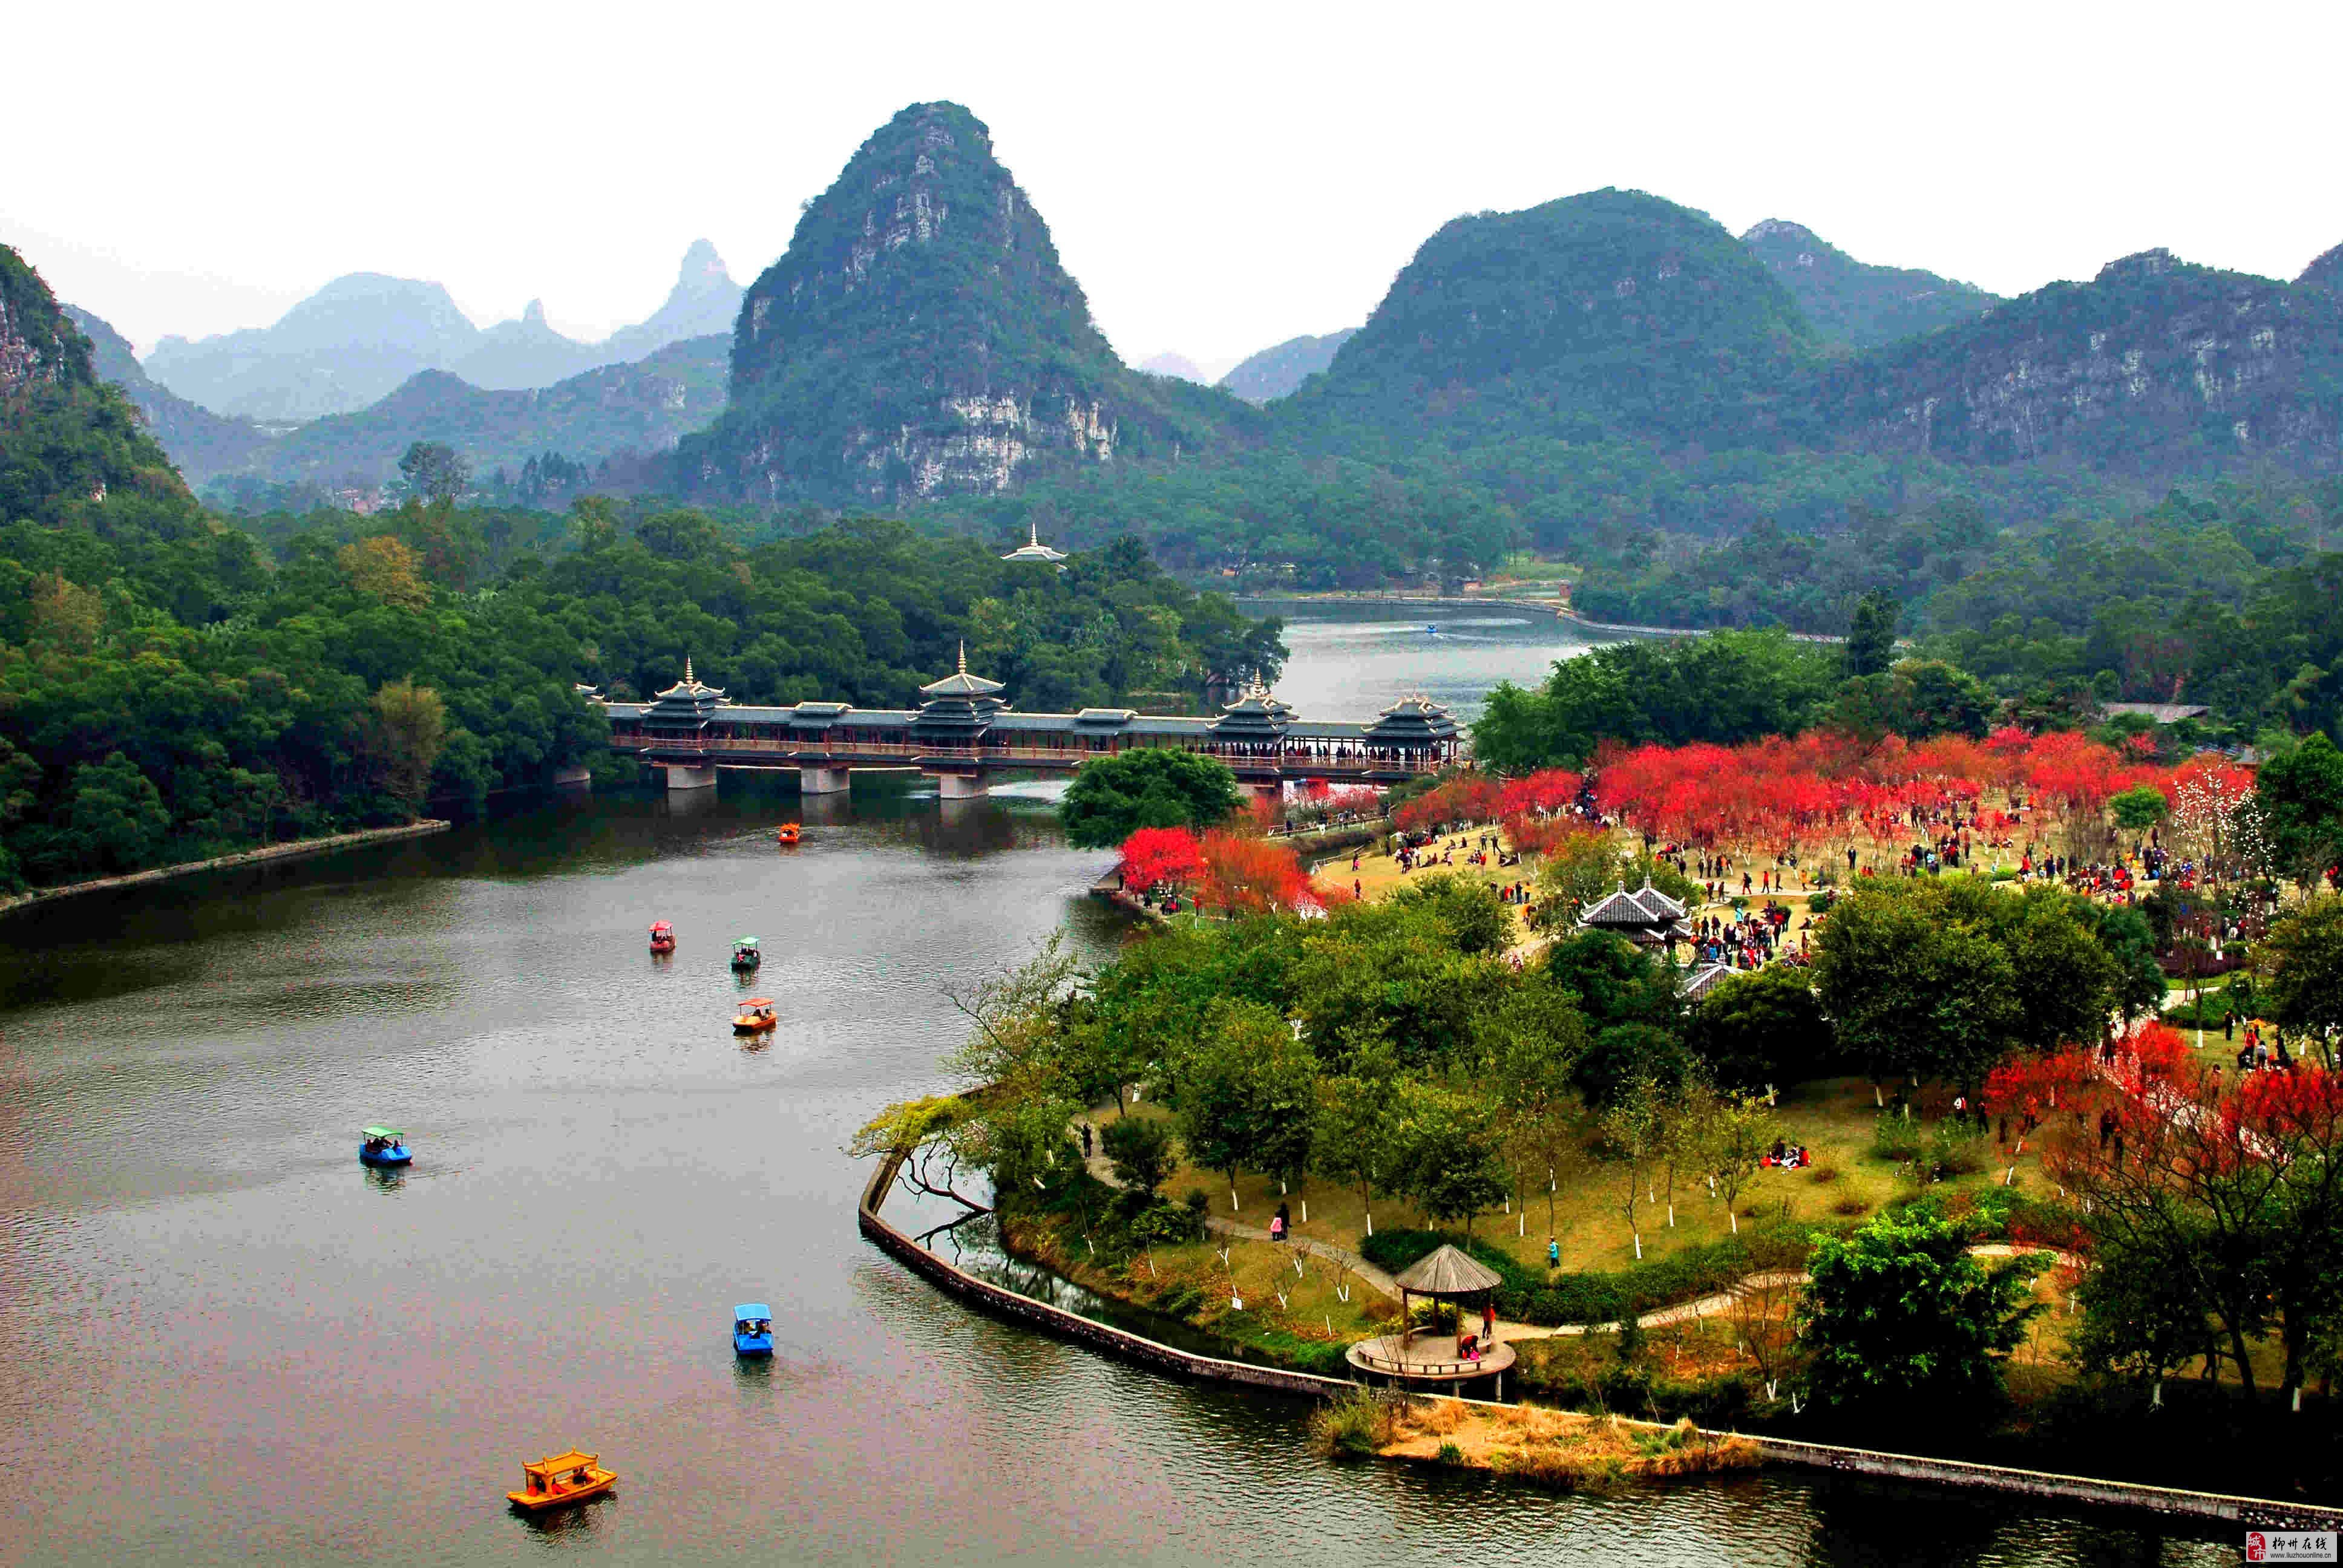 rural tourism in china Rural tourism maintained robust growth in china last year as more city-dwellers prefer a taste of the country life during holidays, and governments hope the burgeoning sector will help relieve.